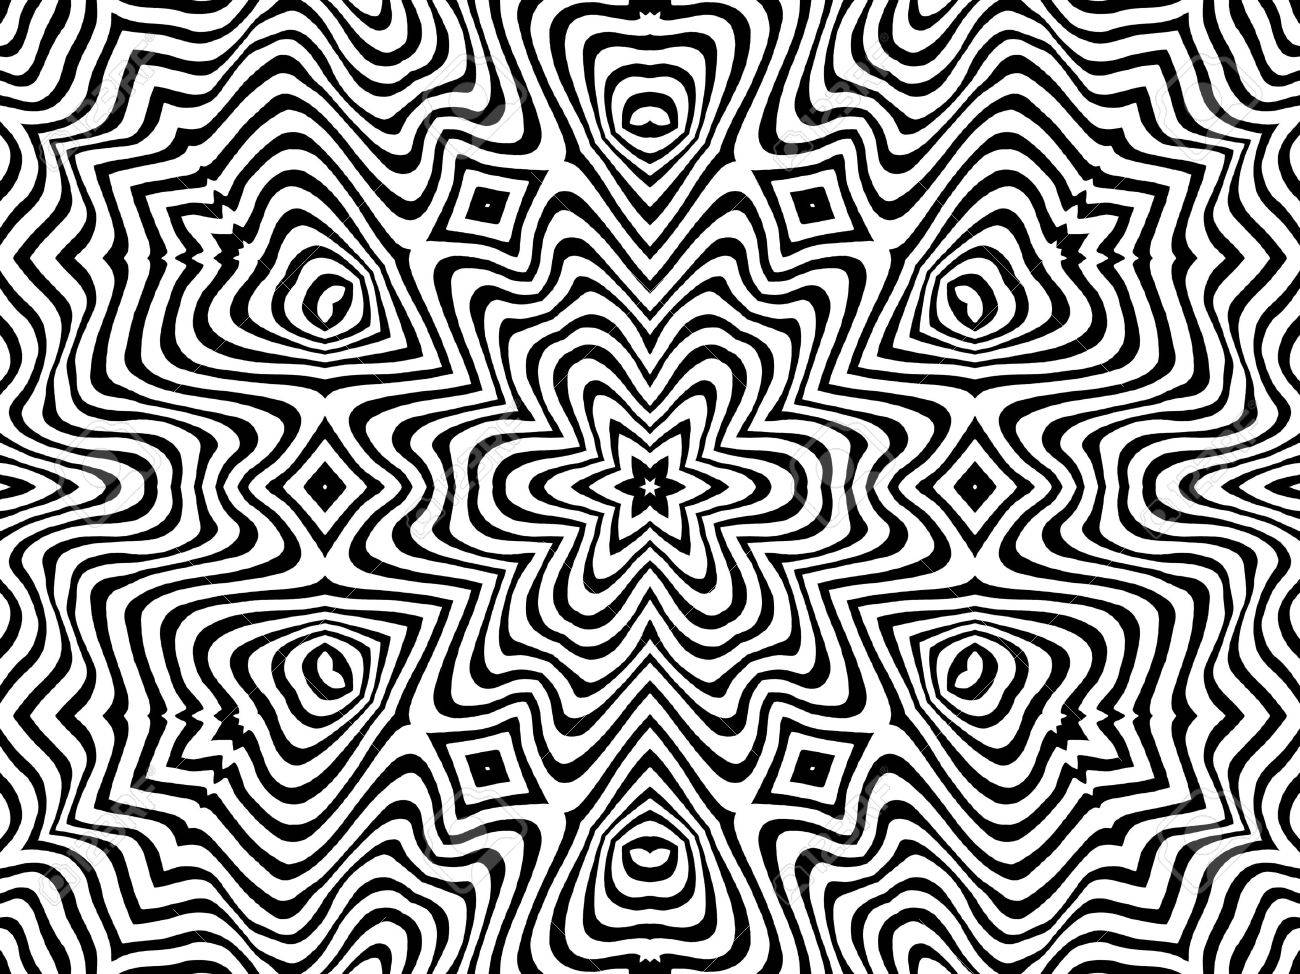 Abstract Monochrome Black And White Pattern Background Stock Photo ...